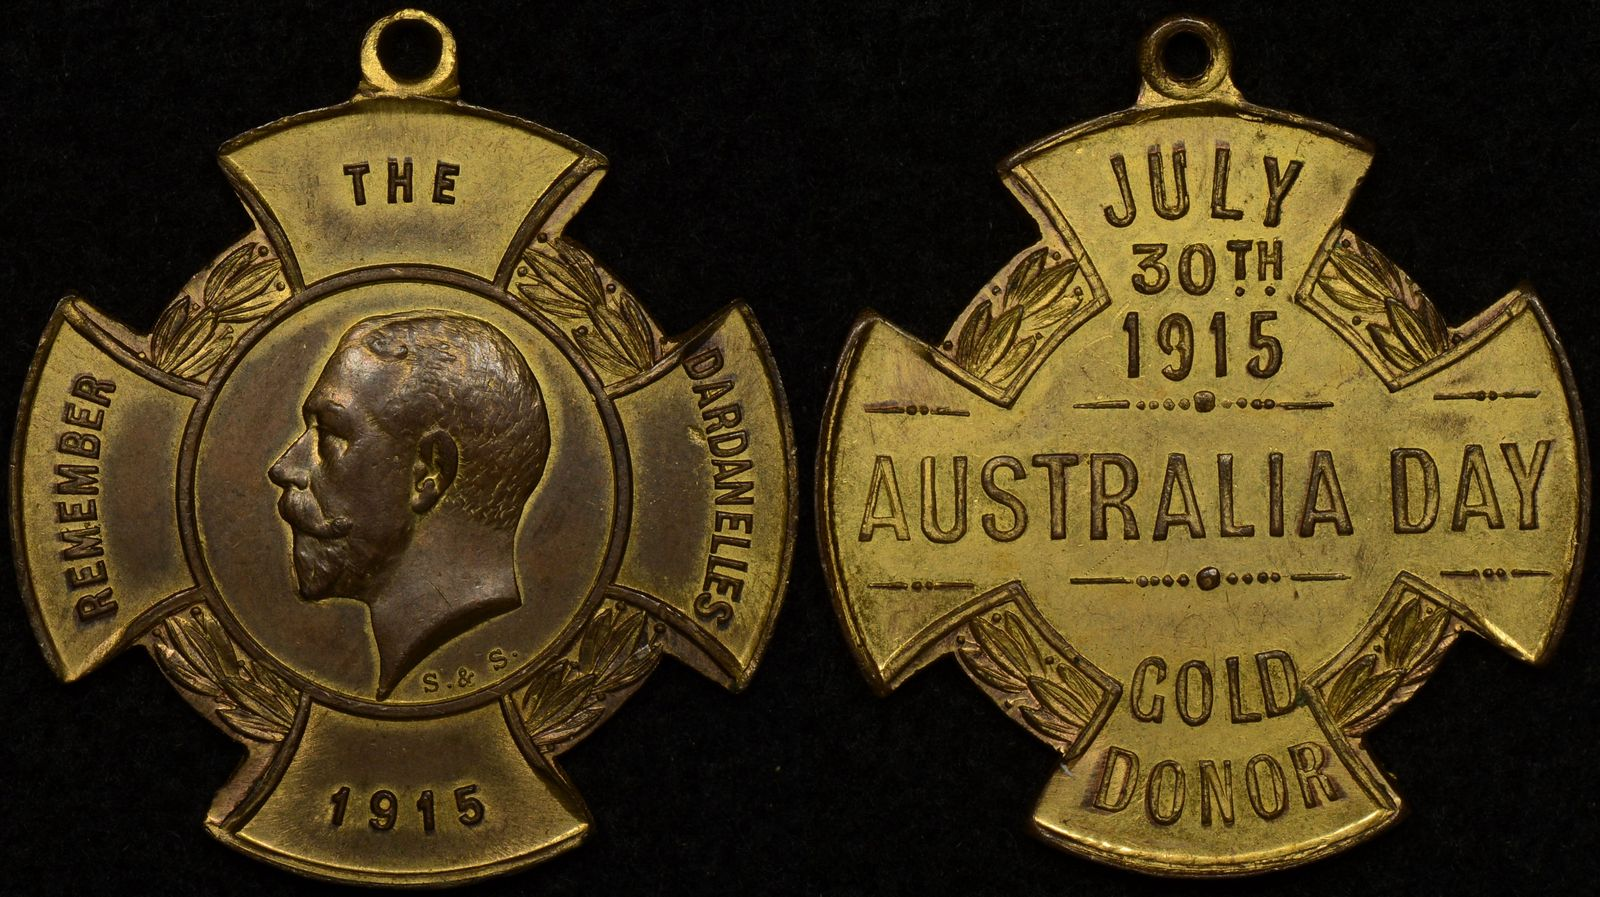 Australia 1915 Remember the Dardanelles Australia Day Gold Donor Medallion